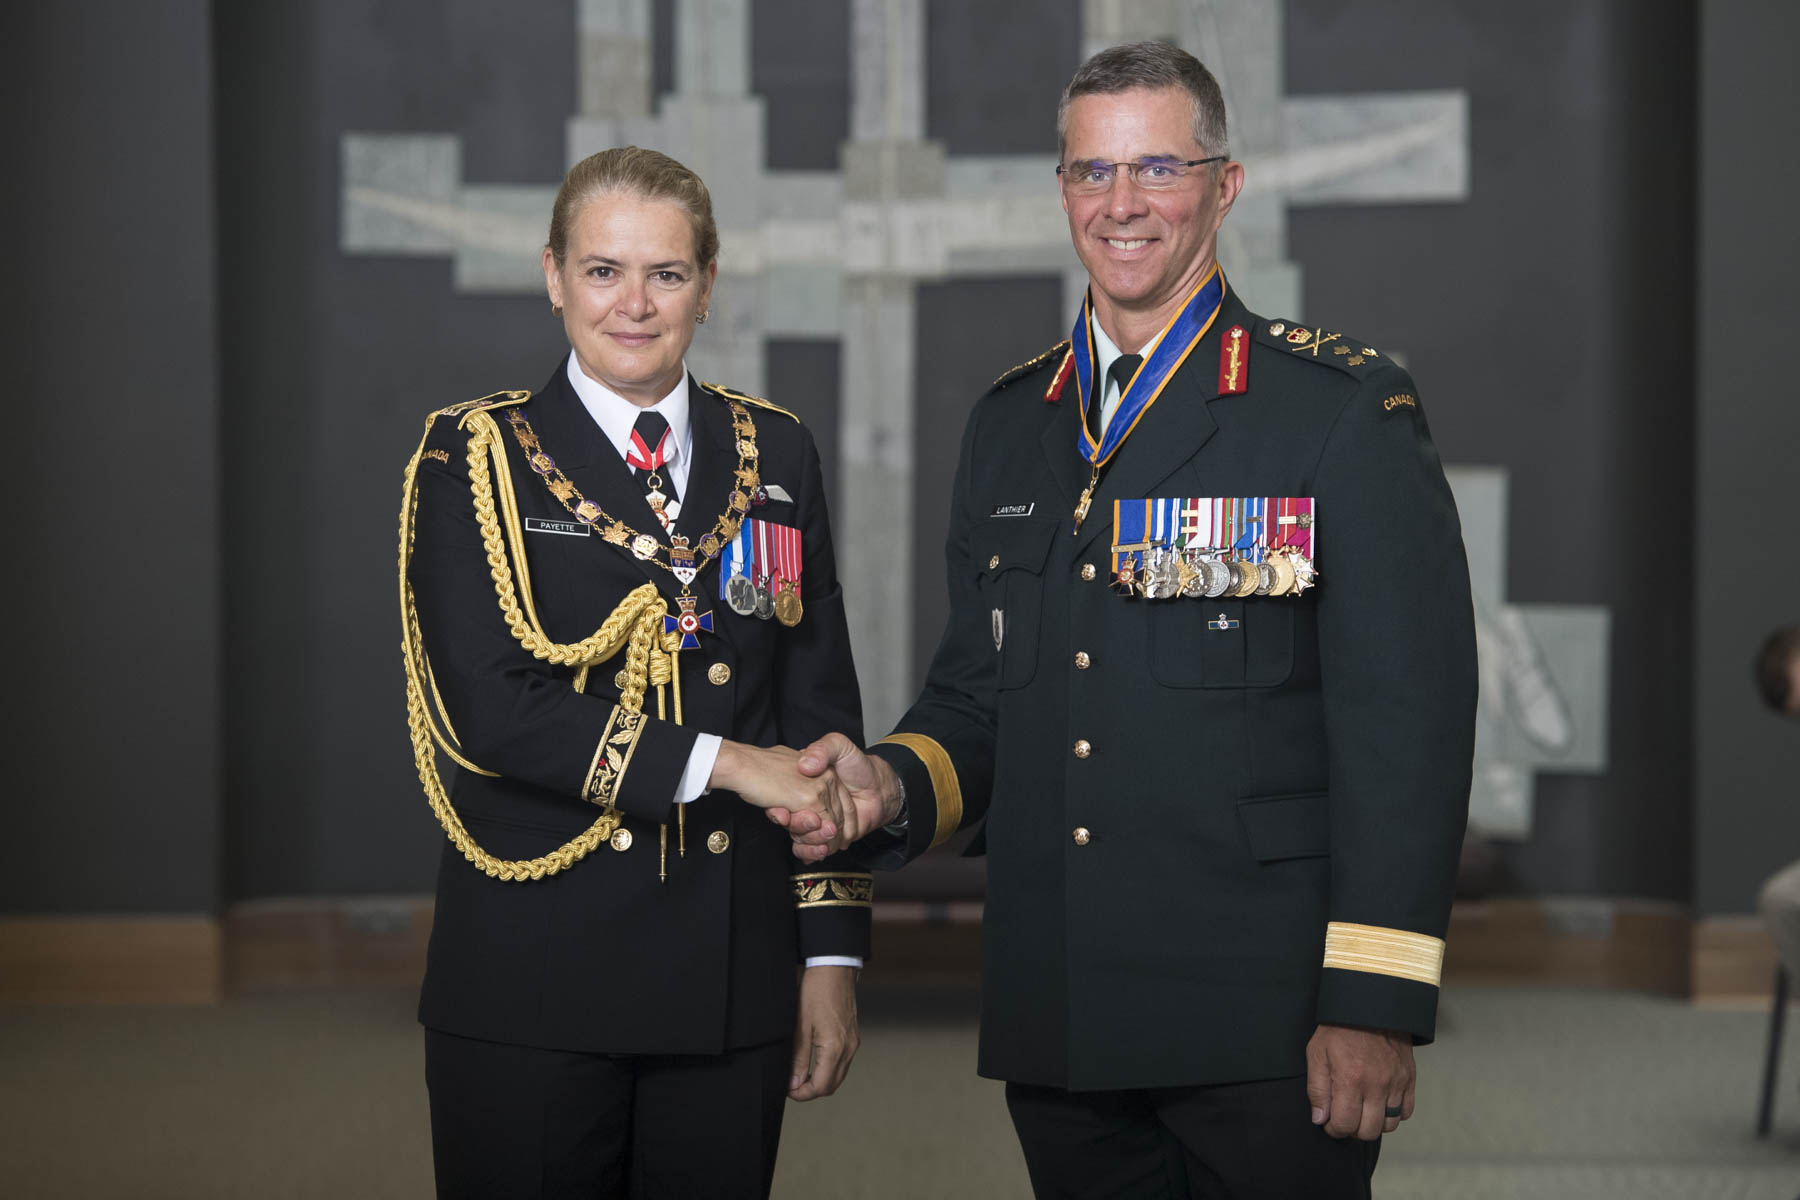 Her Excellency bestowed the honour of Commander of the Order of Military Merit upon Lientenant-General Jean-Marc Lanthier, C.M.M., M.S.C., M.S.M., C.D.